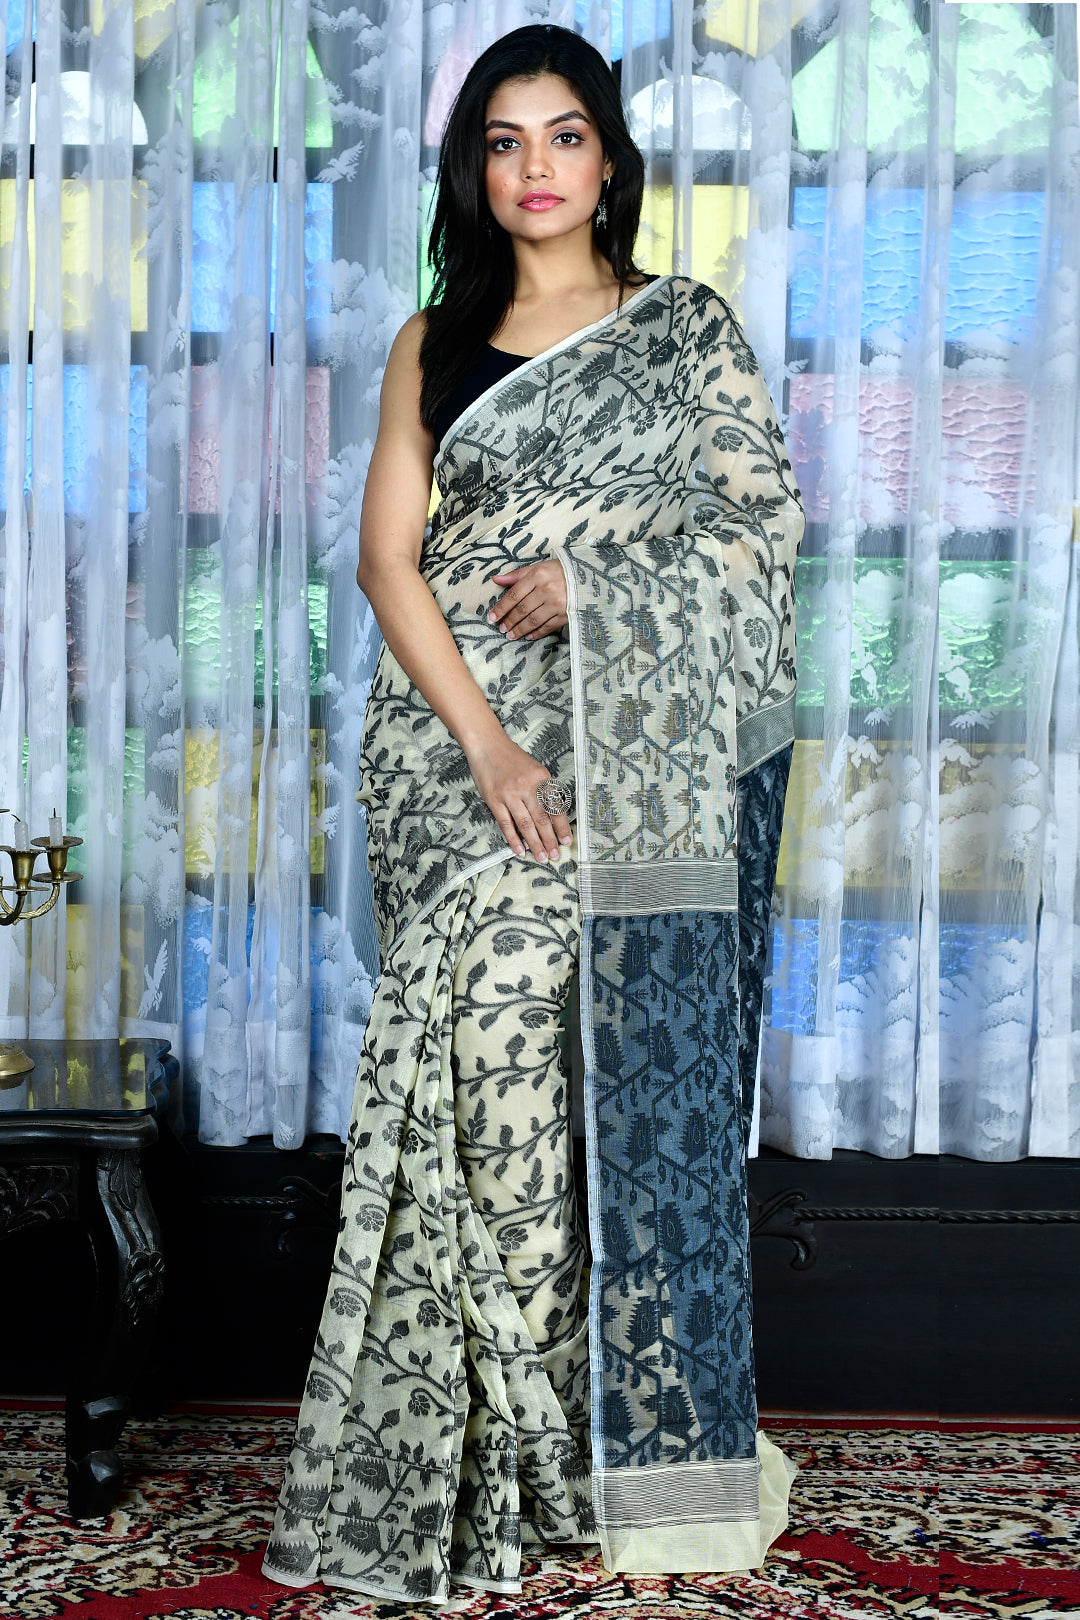 Off White Jamdani Saree With All Over Black Thread Weave - Charukriti.co.in